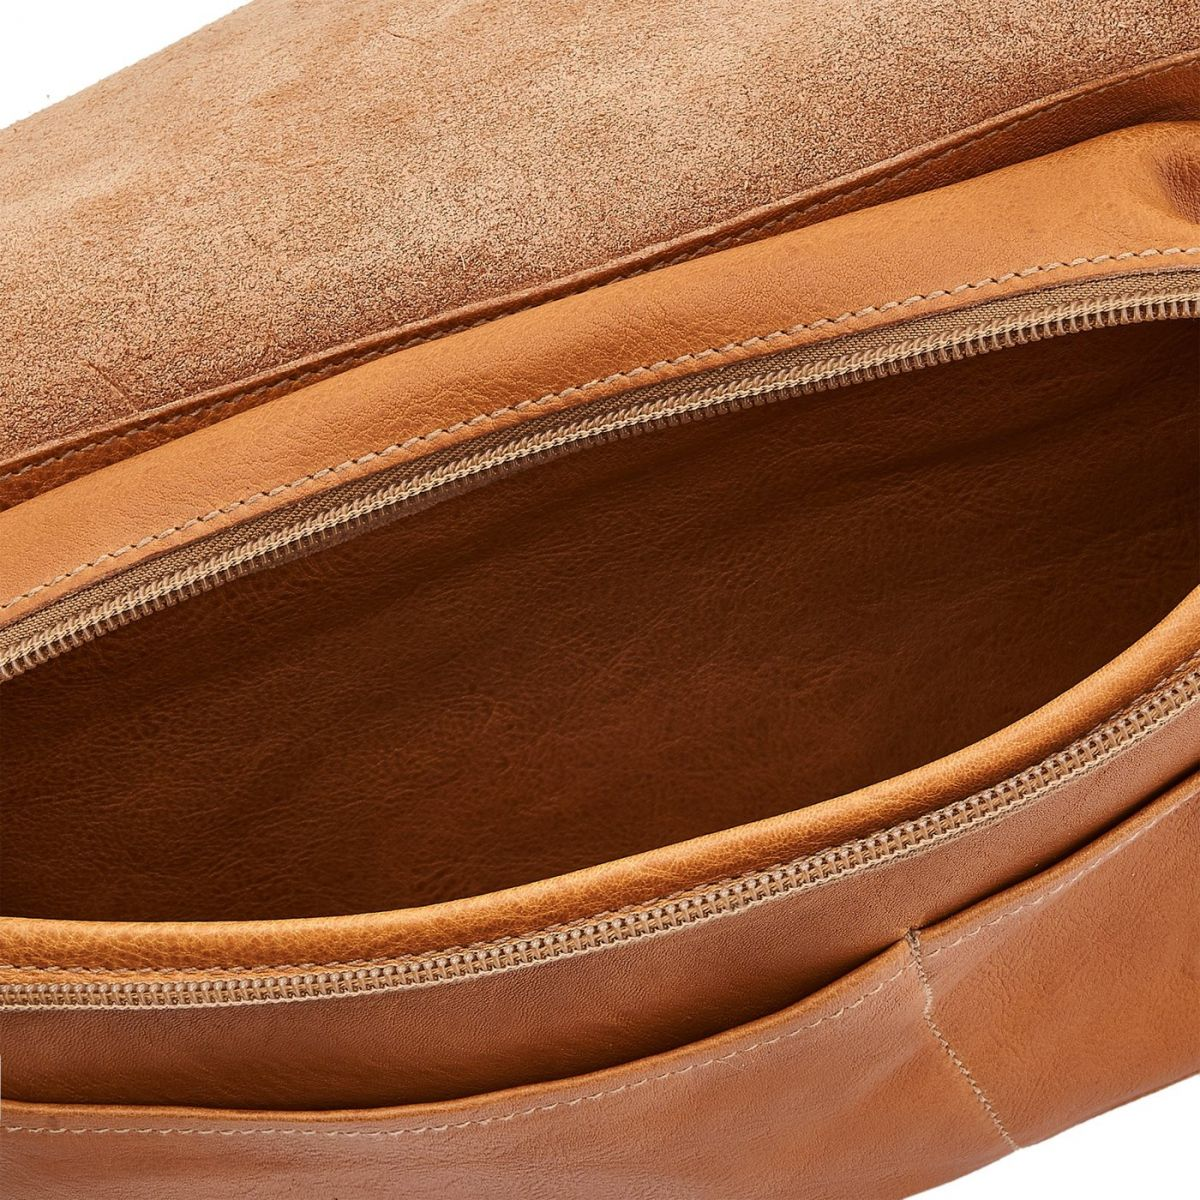 Men's Belt Bag in Vintage Cowhide Leather BBB011 color Natural | Details